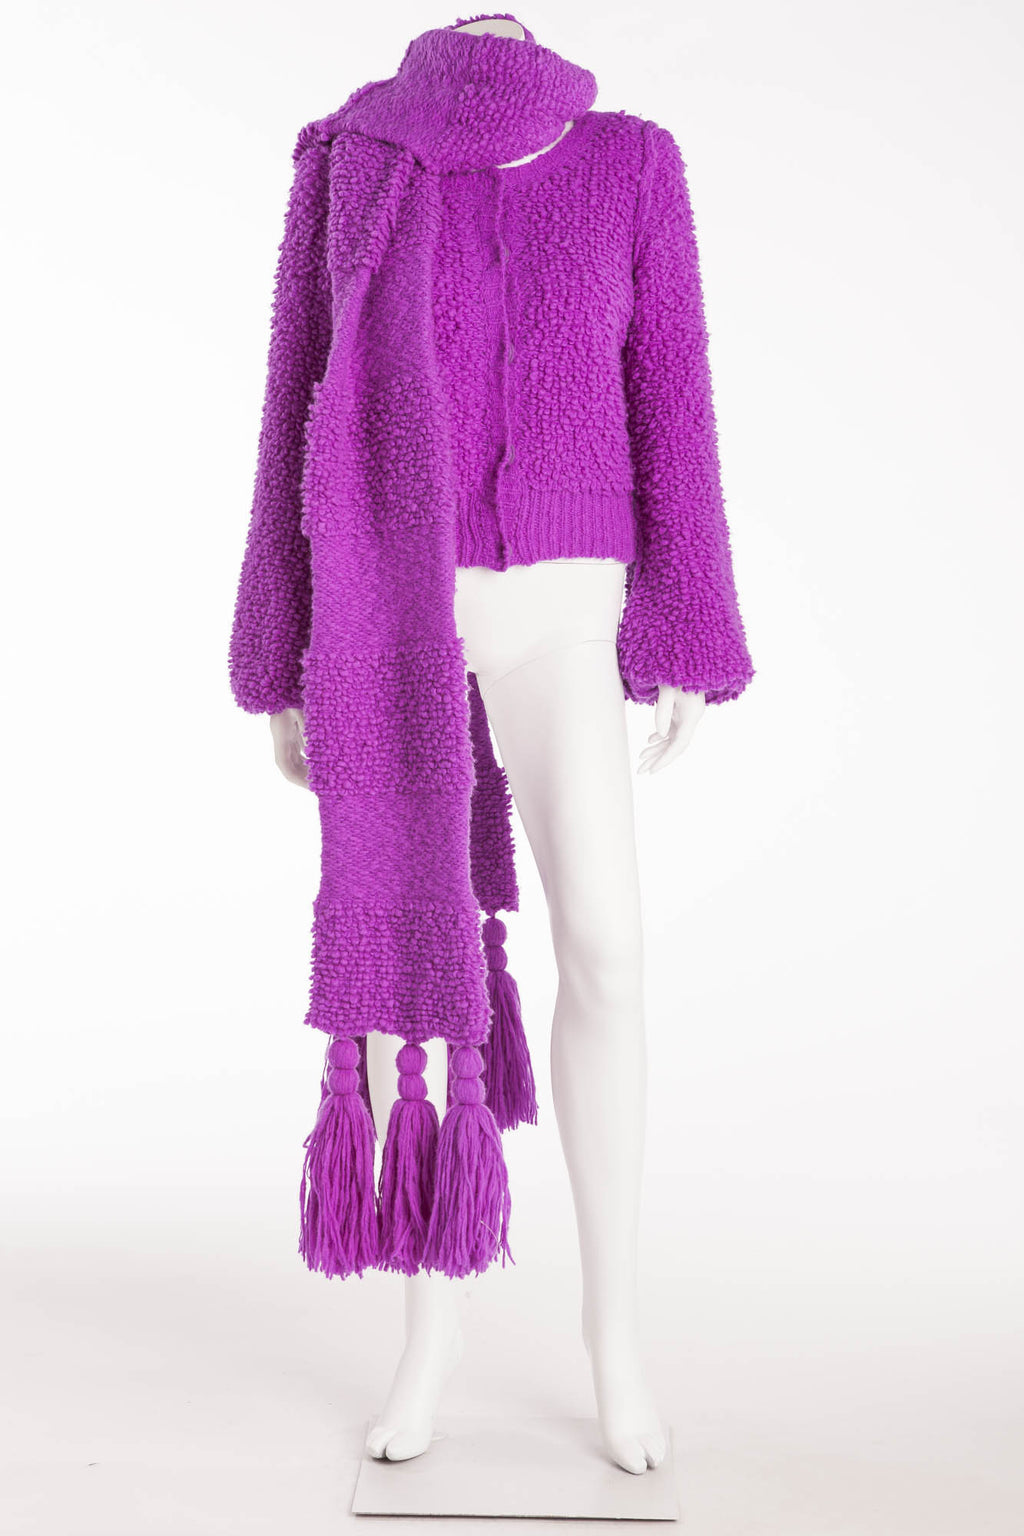 Sonia Rykiel - As seen on the 2008 Runway Collection - 2PC Purple Knit Sweater and Matching Scarf - S